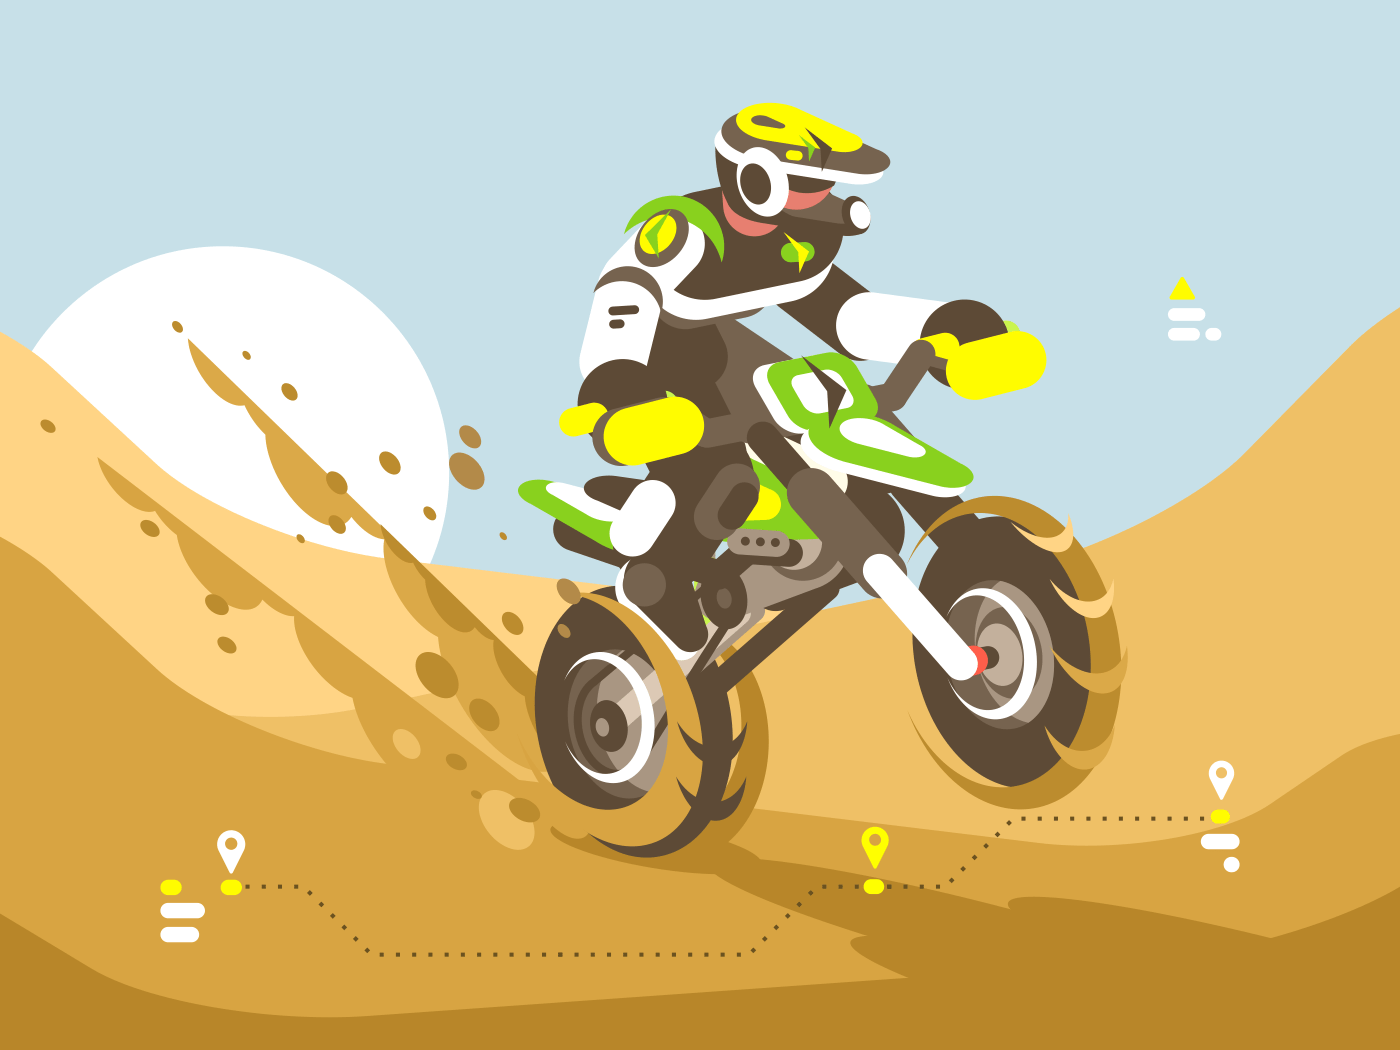 Motorcyclist on motorcycle wearing helmet racing in desert. Vector illustration